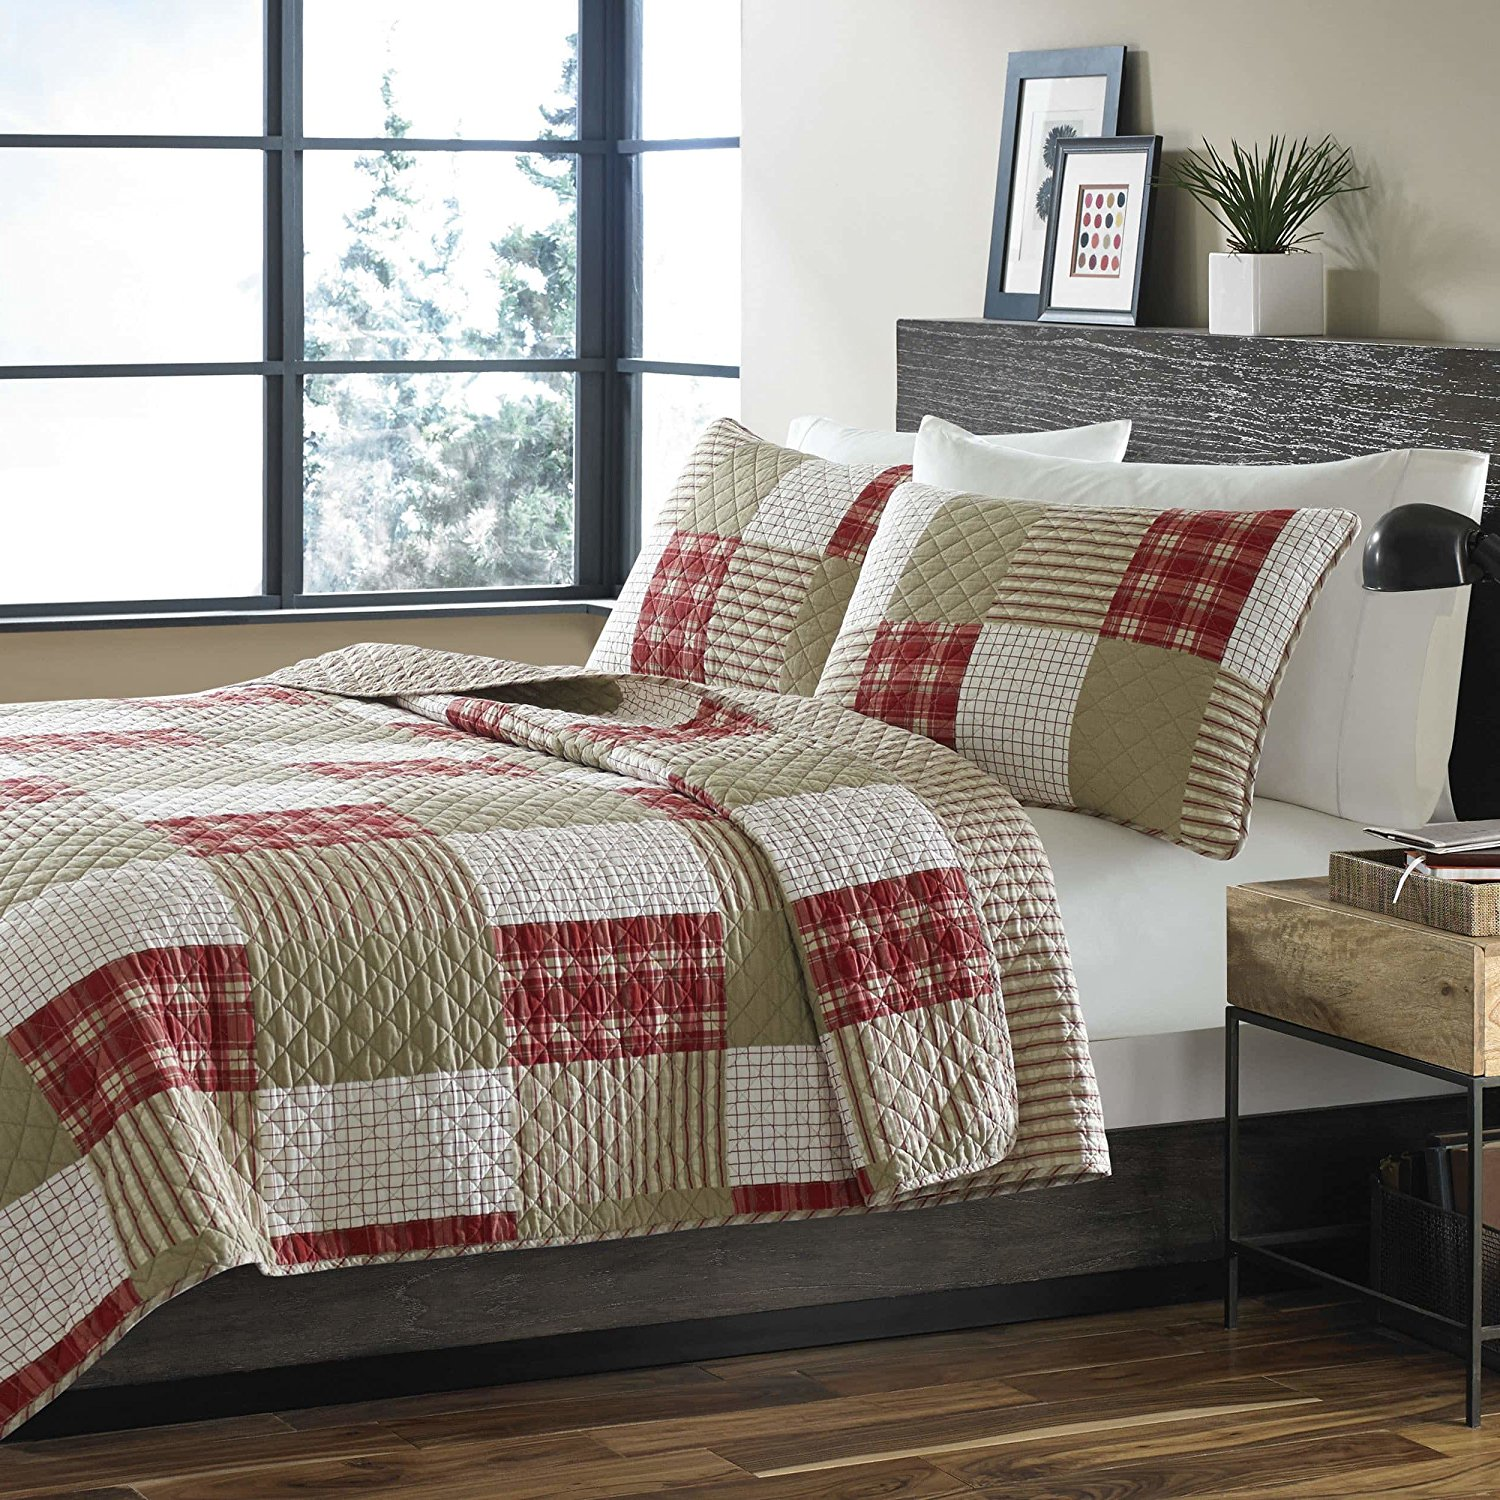 3 Piece Khaki White Patchwork Quilt Full Queen Set, Light Brown Red Plaid Striped Pattern, Reversible Checkered Comfortable Traditional Geometric Luxurious Adult Bedding Master Bedroom Quilted, Cotton